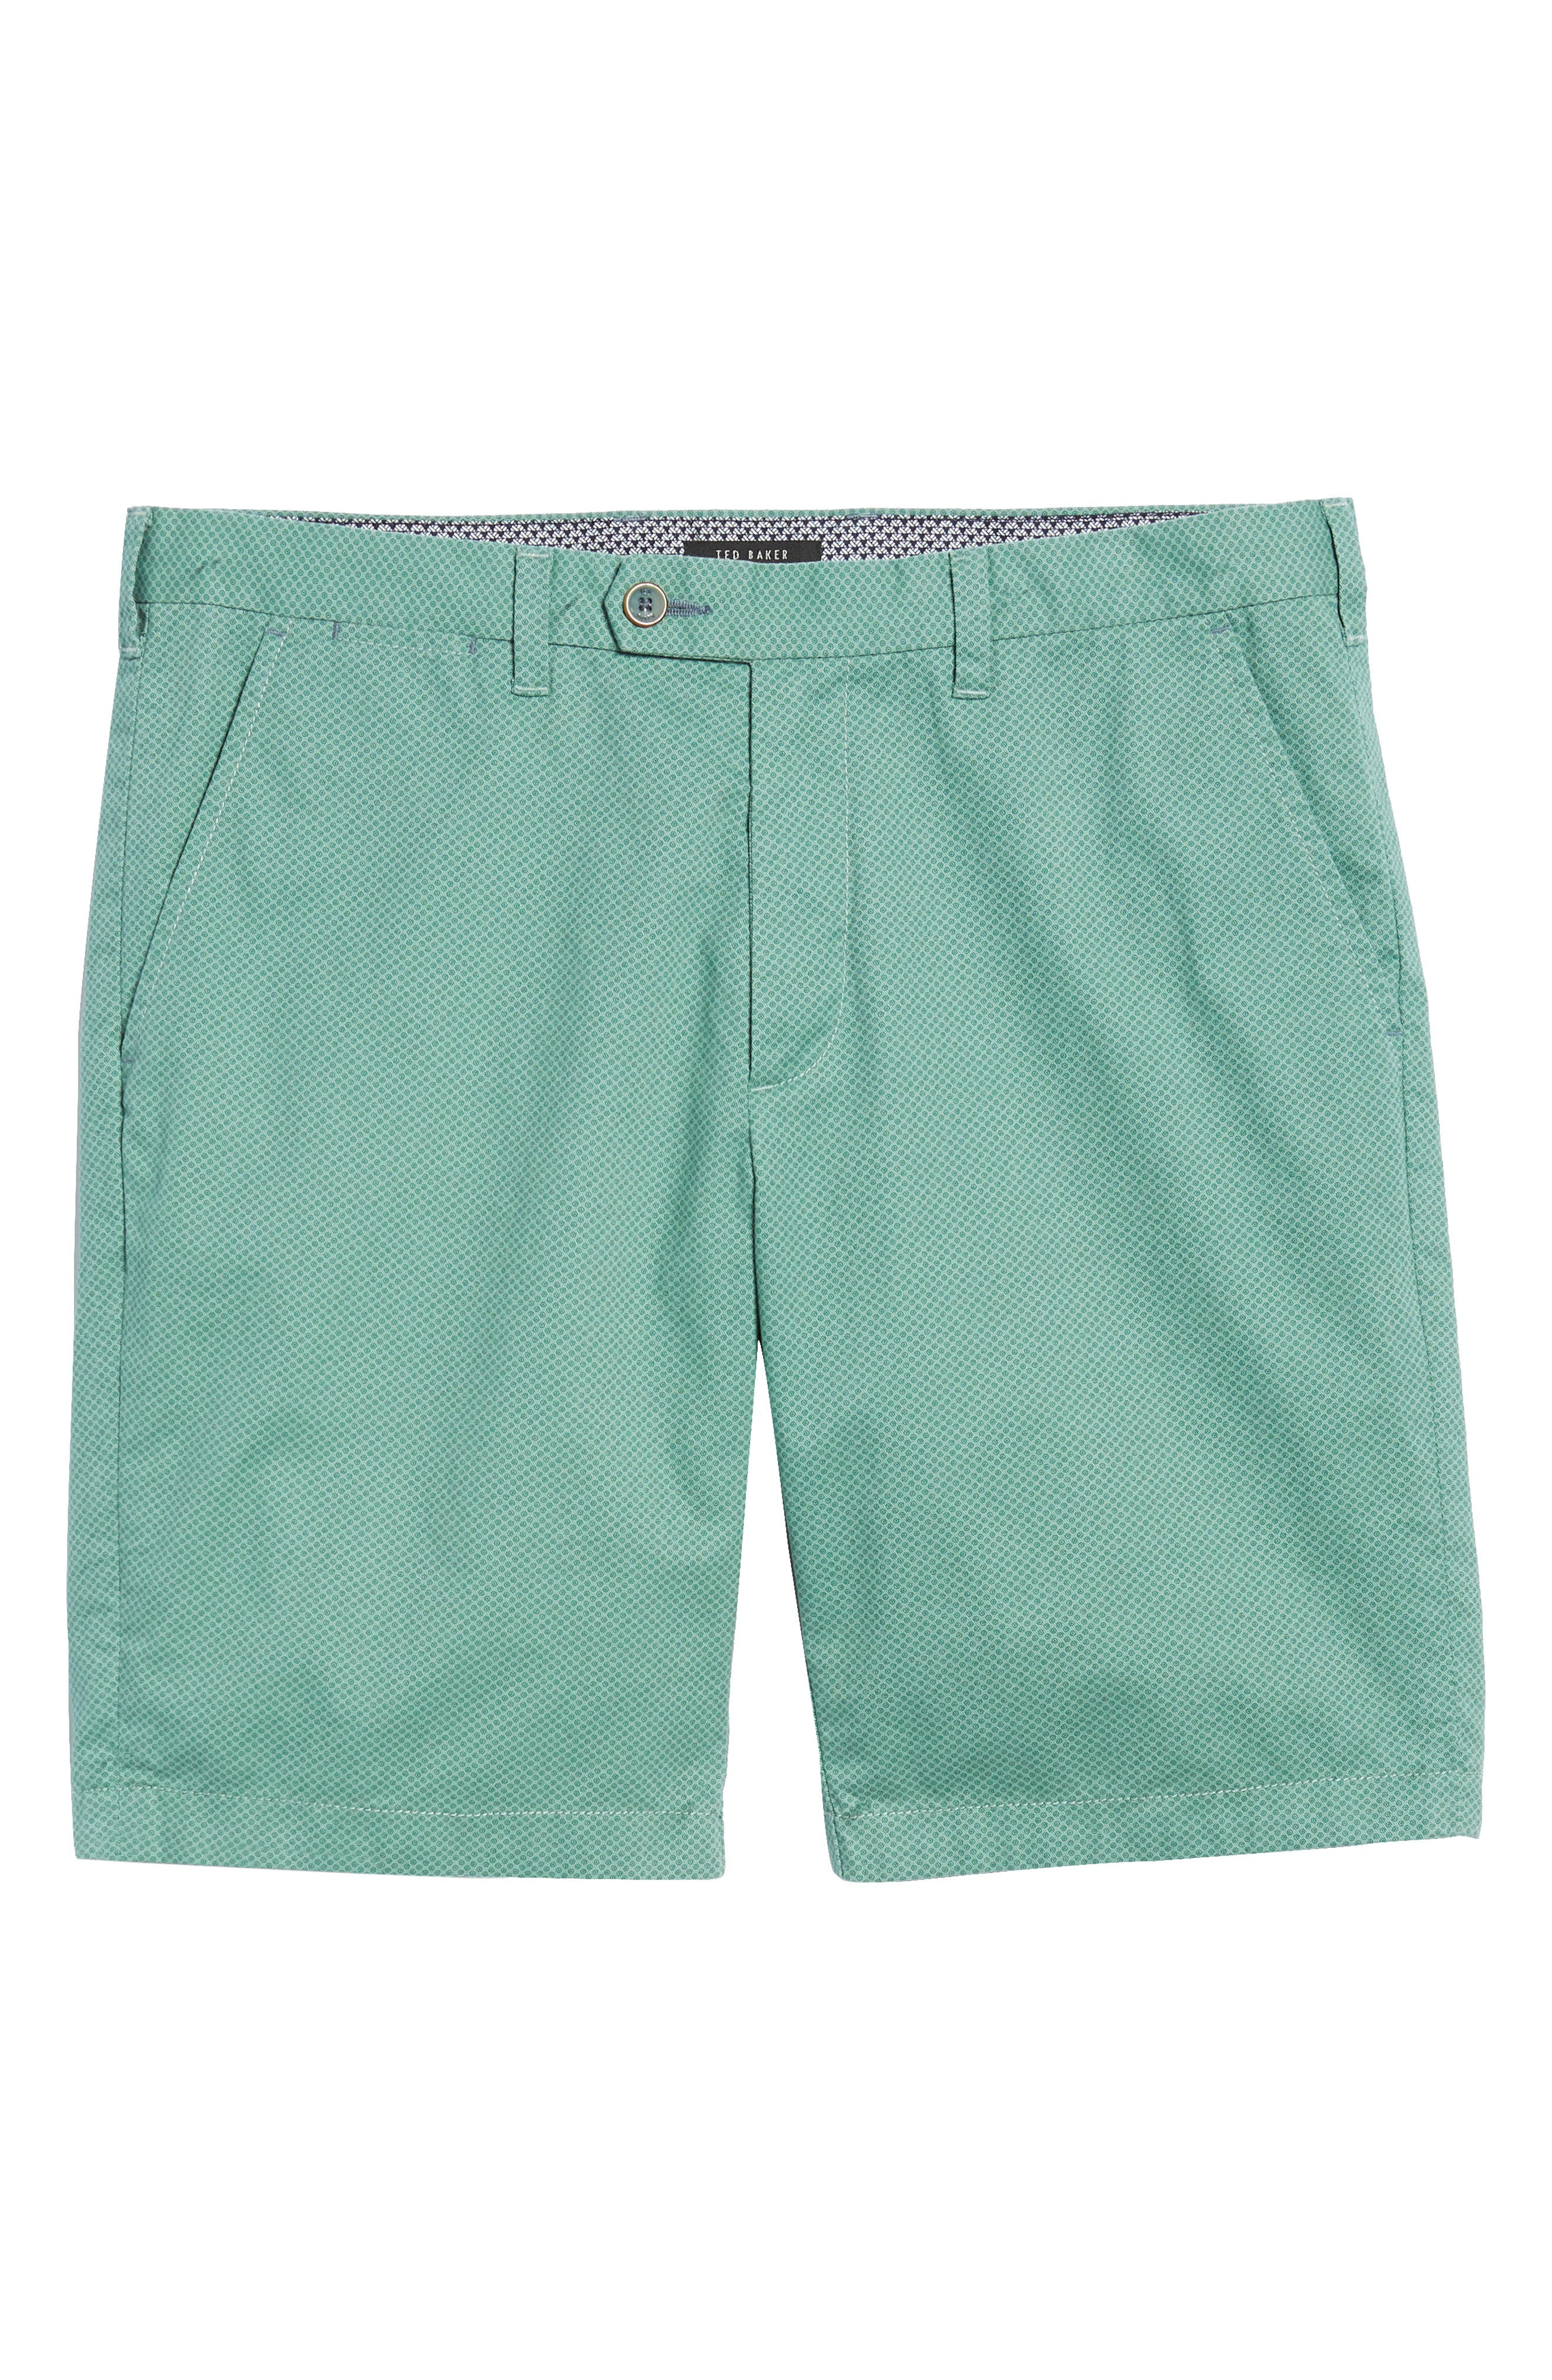 Print Cotton Shorts,                             Alternate thumbnail 6, color,                             Green